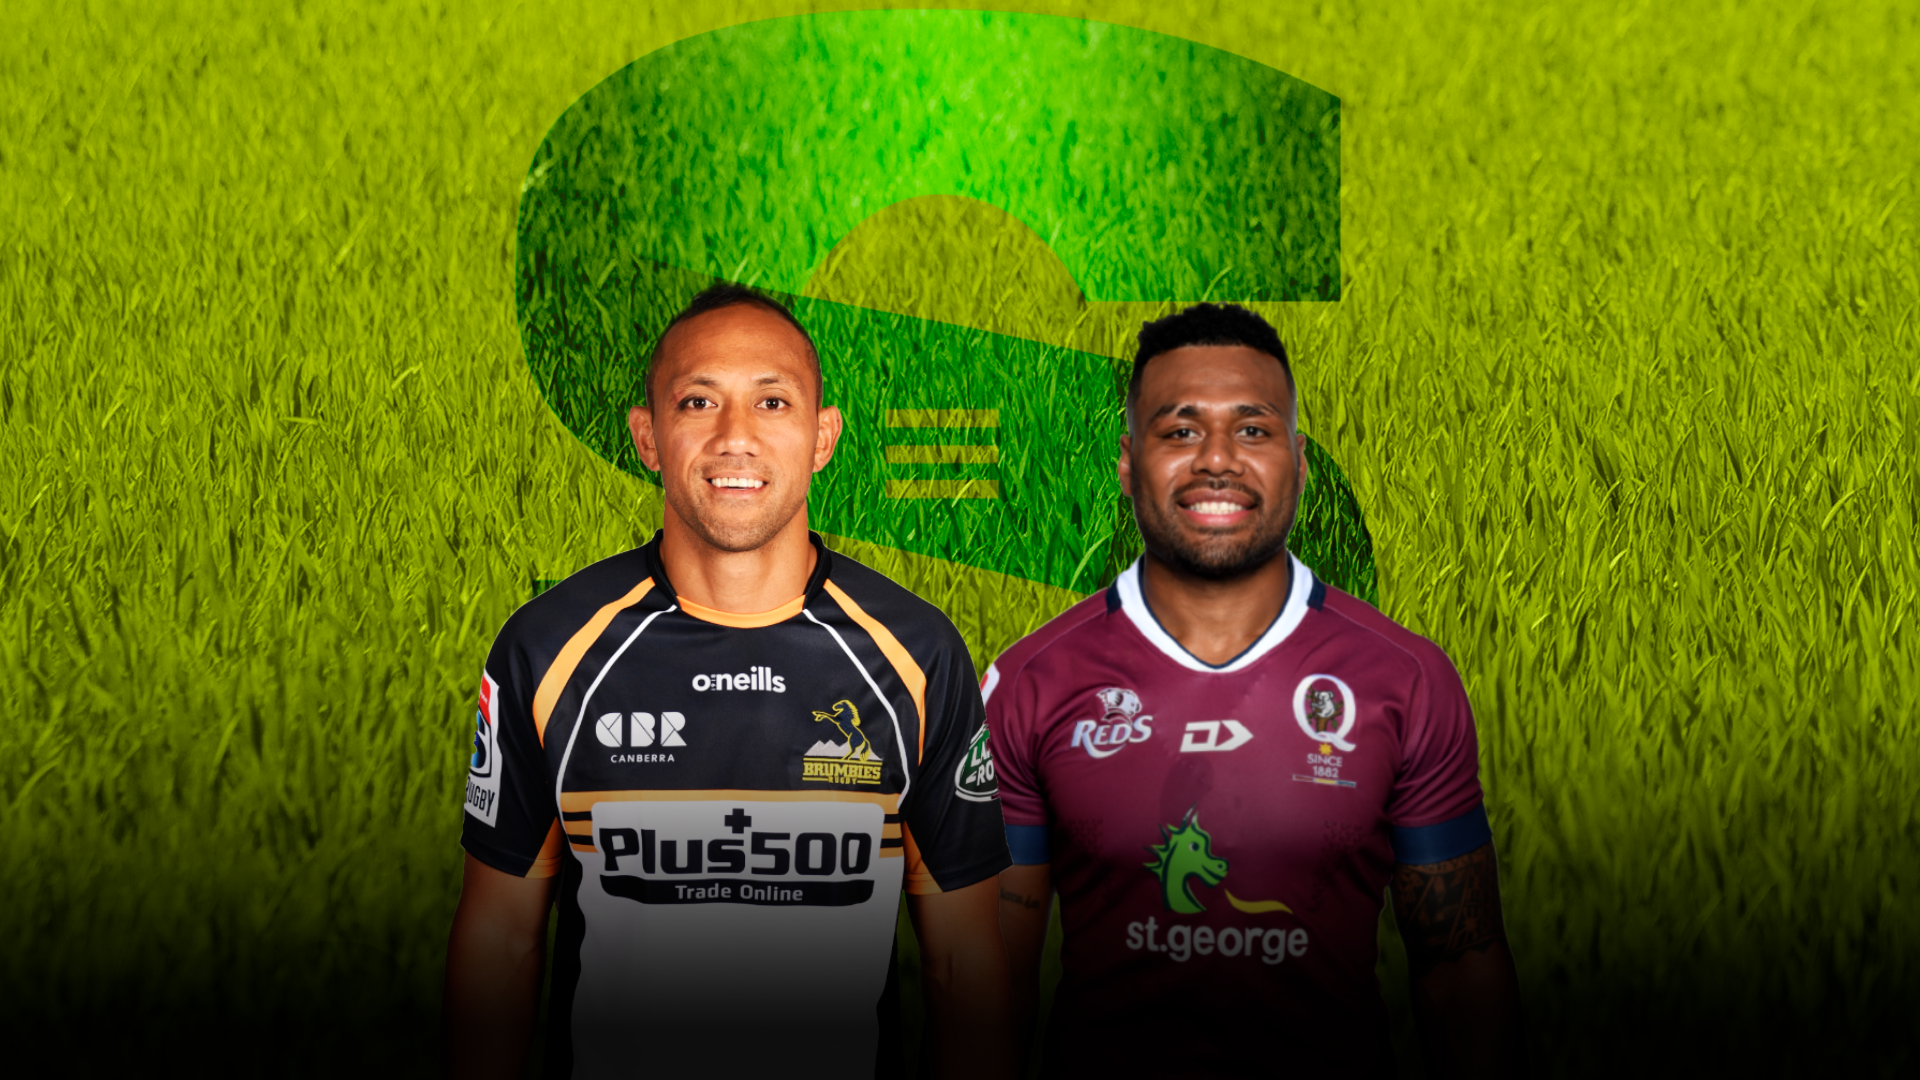 Reds v Brumbies prediction